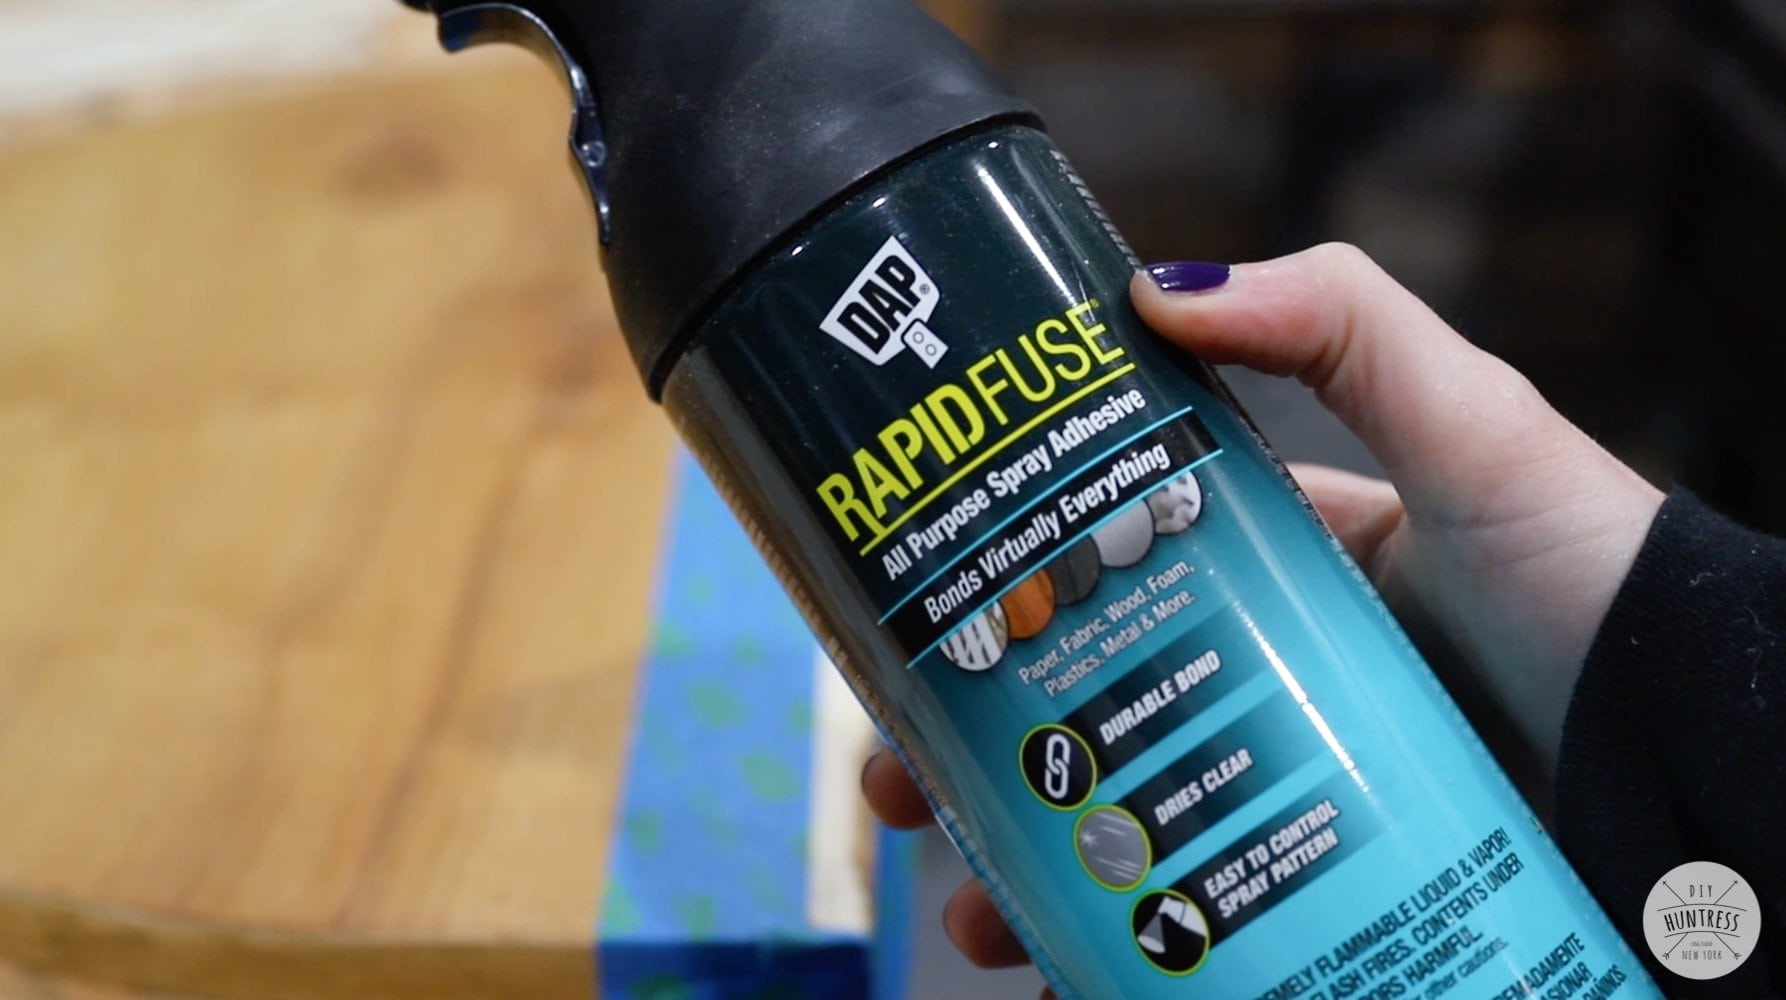 DAP rapid fuse adhesive spray